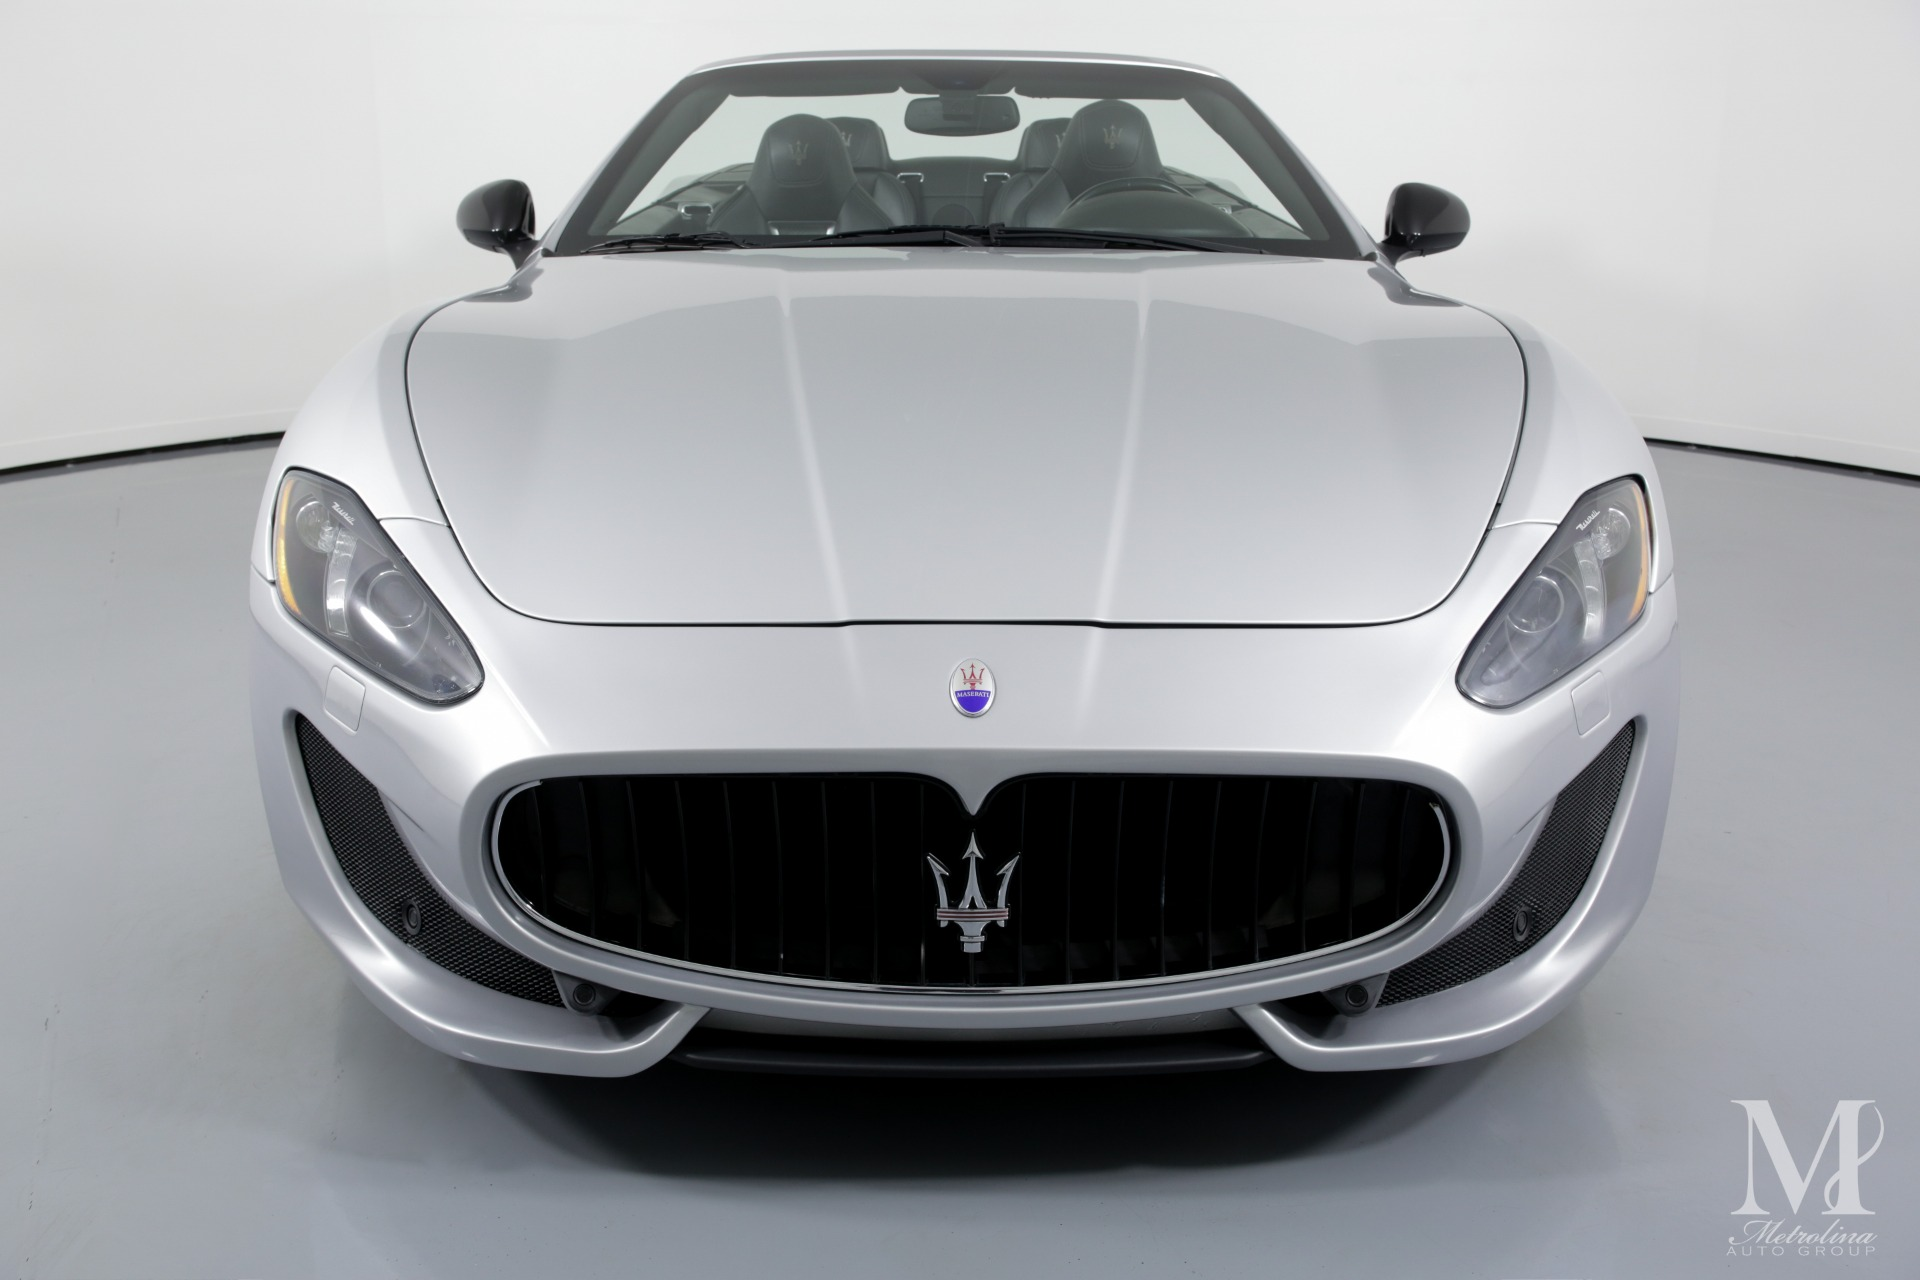 Used 2014 Maserati GranTurismo Sport 2dr Convertible for sale $54,996 at Metrolina Auto Group in Charlotte NC 28217 - 4